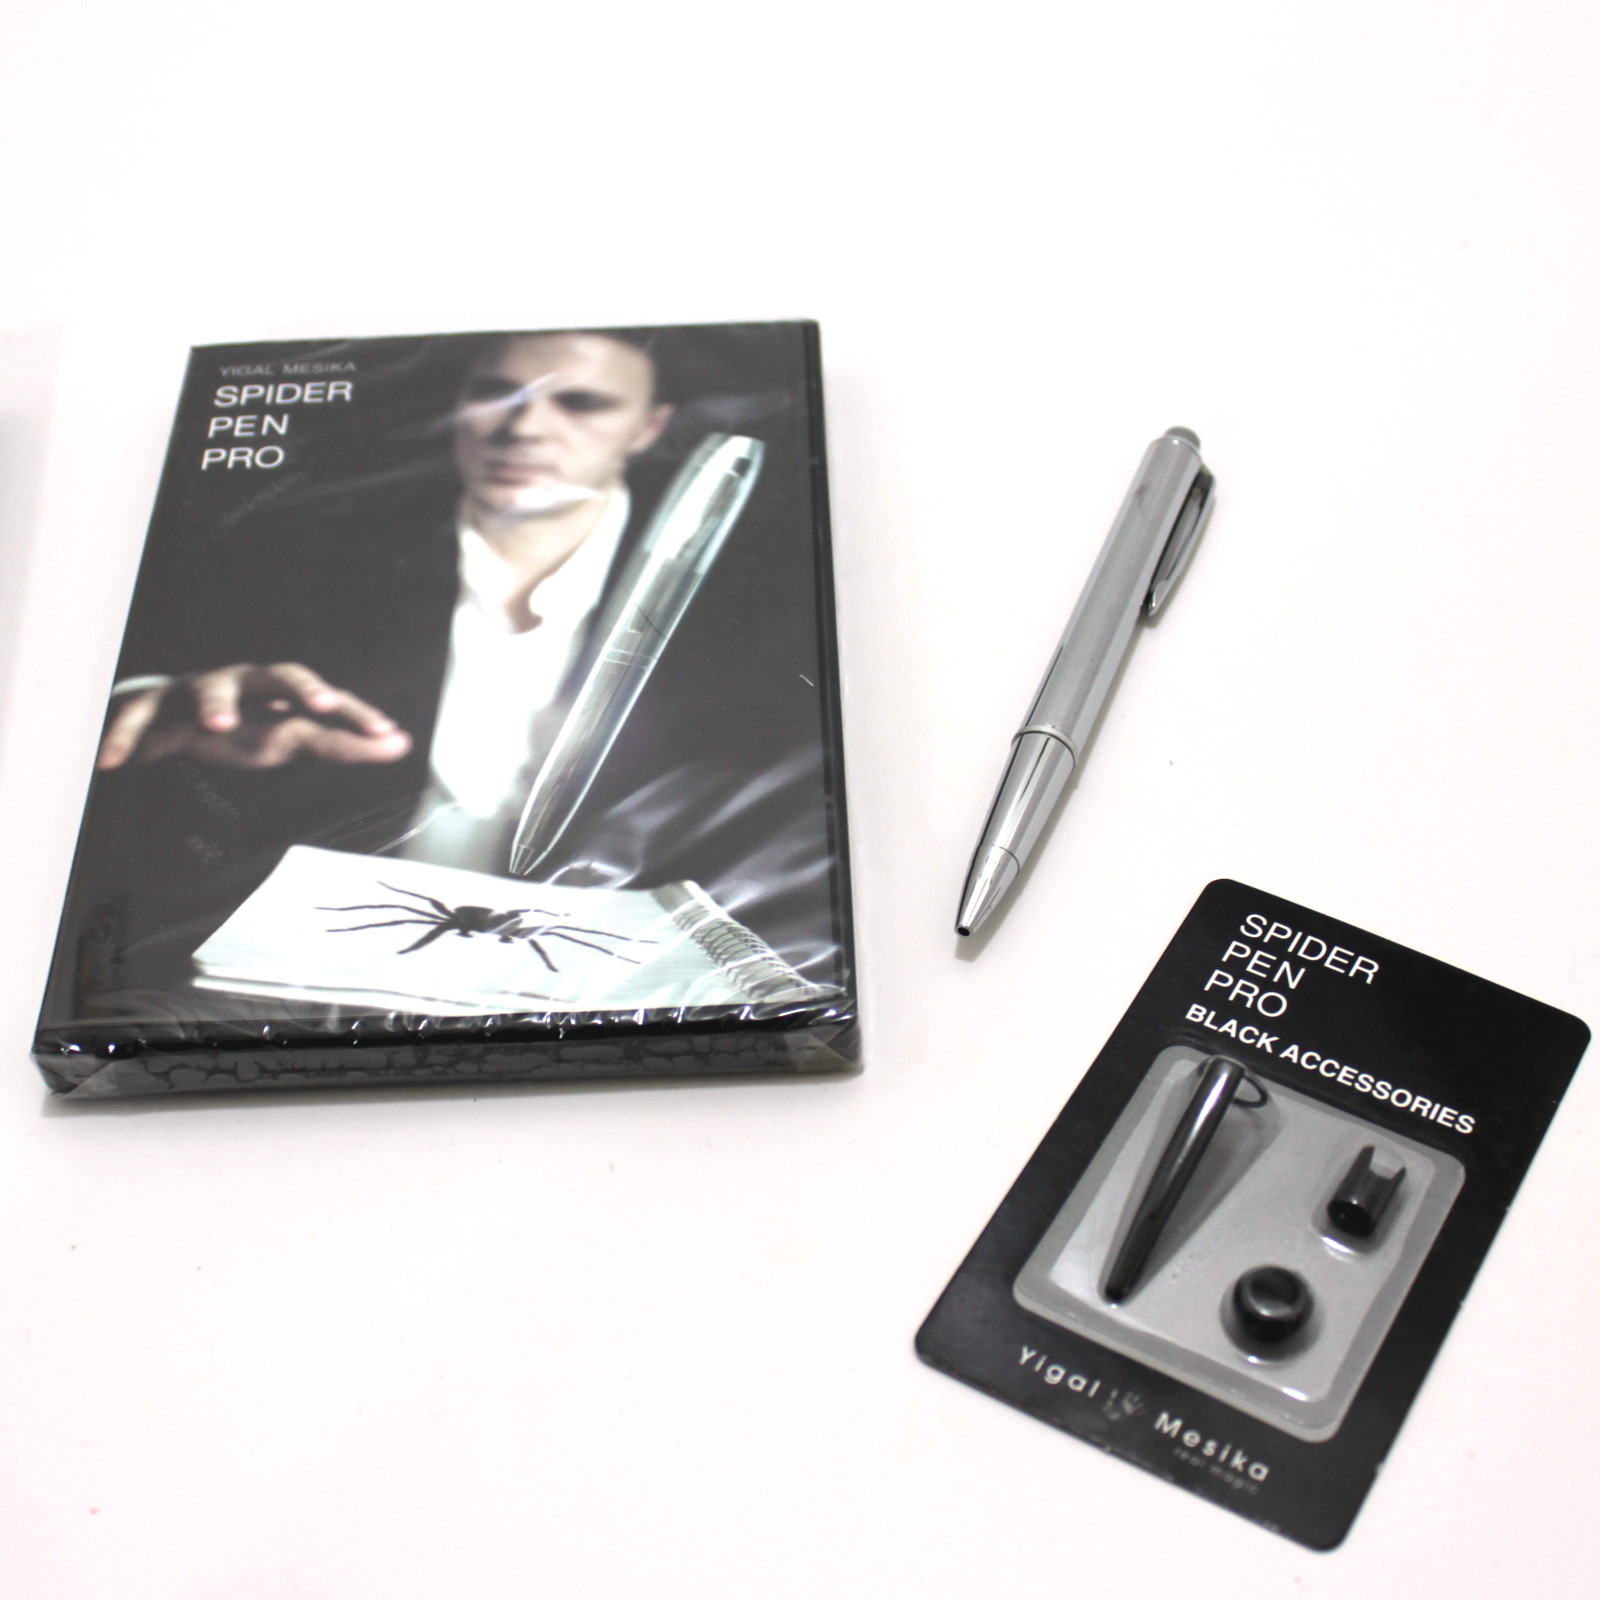 Spider Pen Pro and Accessories by Yigal Mesika | Martins